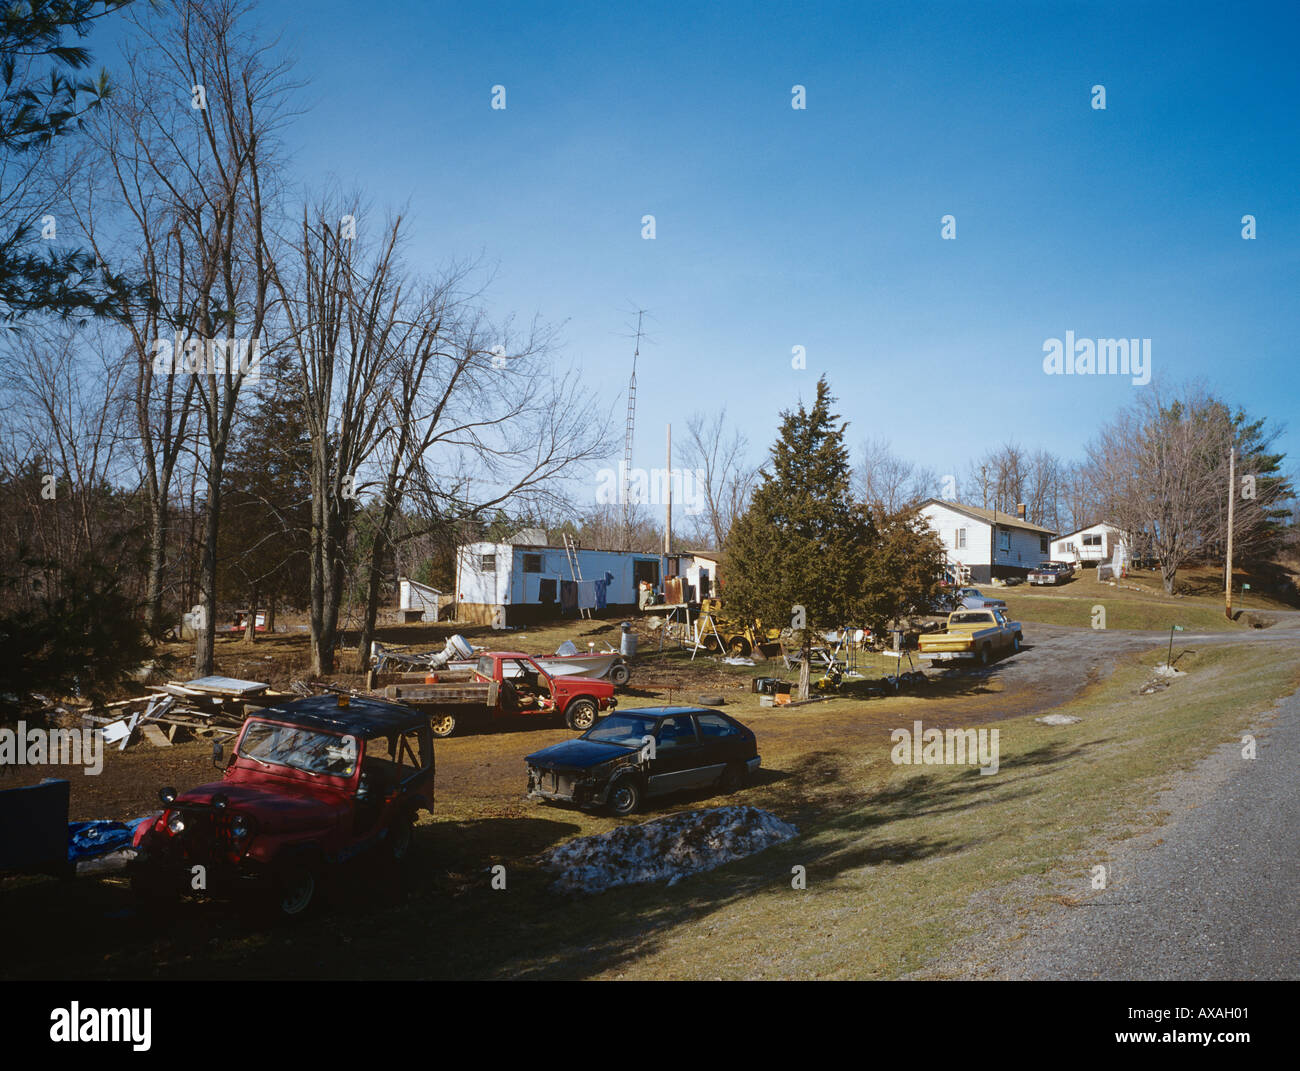 Rural Ontario homes with old cars pickup trucks and junk in untidy ...